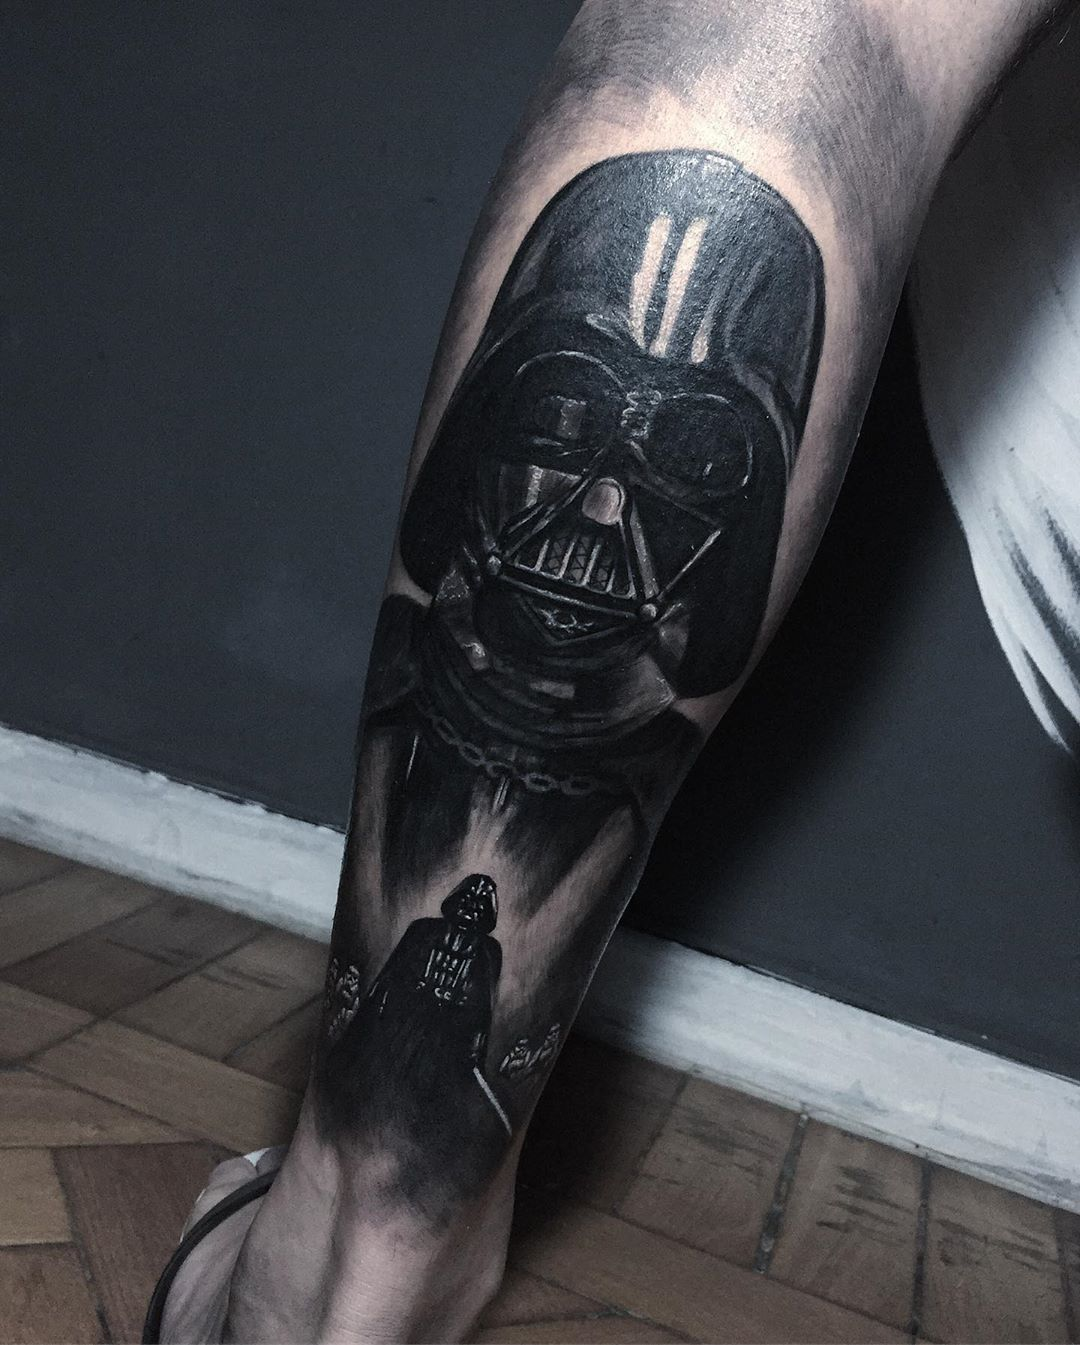 Tattoo depicting both Darth Vader mask and full length body